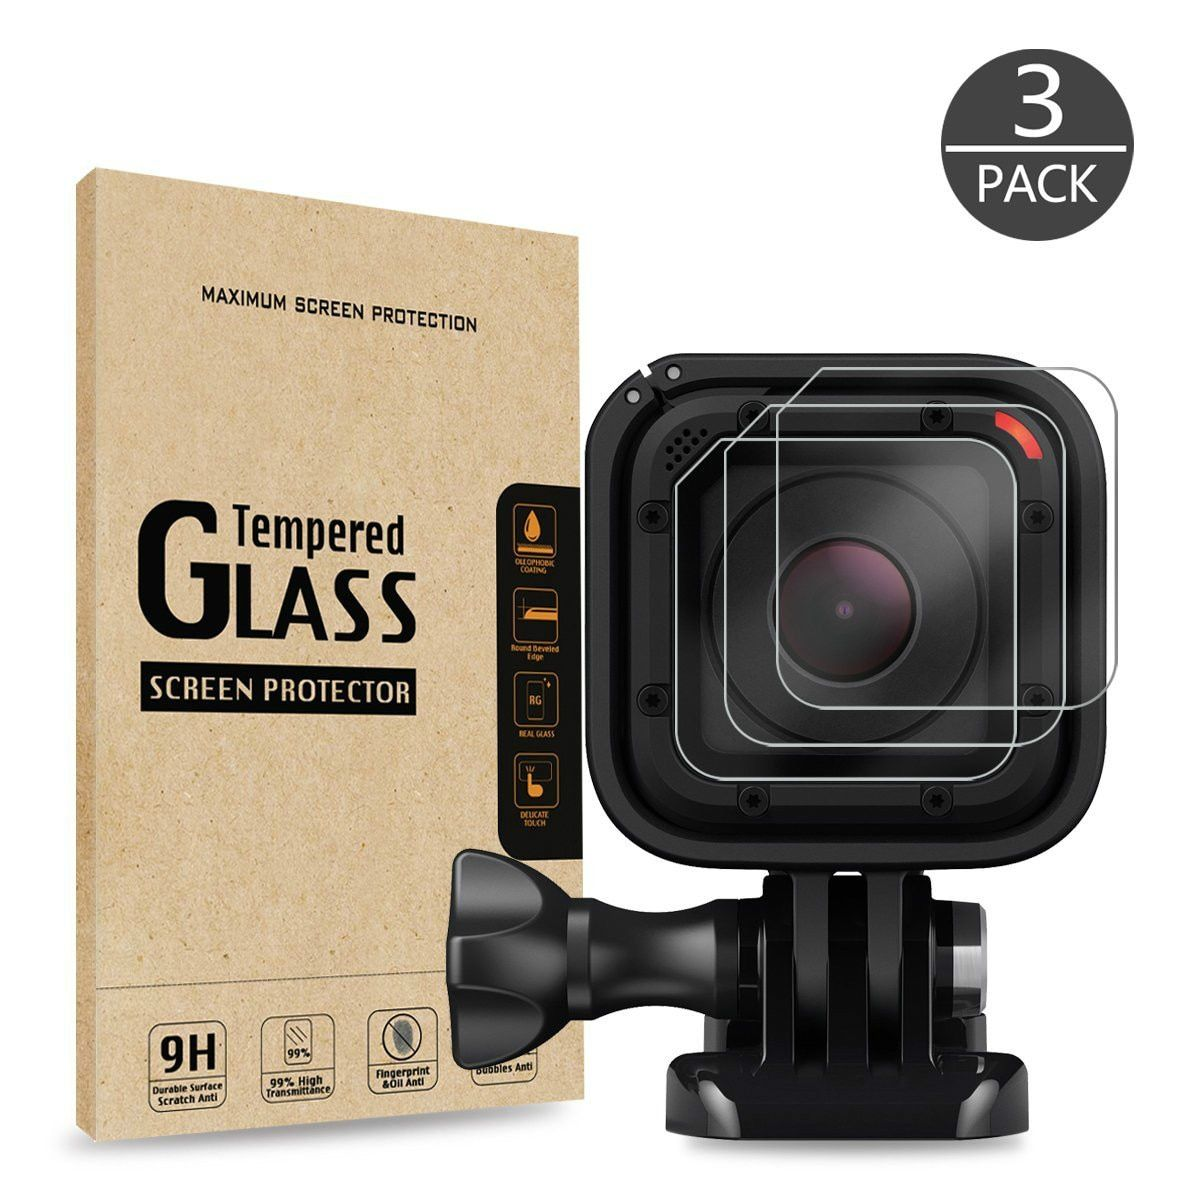 Gopro Hero 4 Session screen protector film Tempered Glass Lens For Gopro Hero 4 Session Sport Action Camera